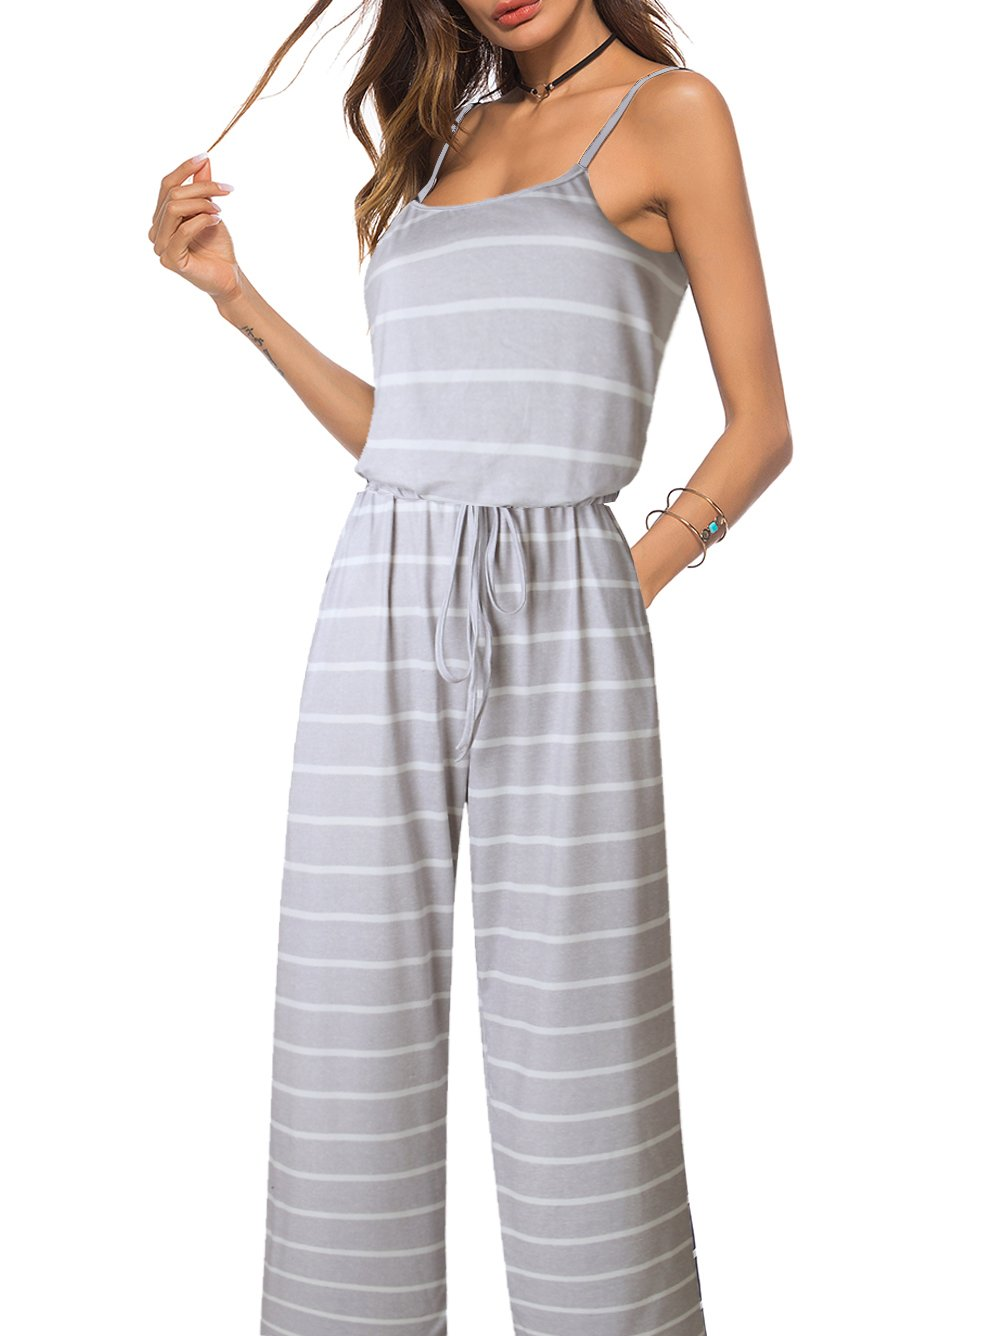 Famulily Women's Comfy Stretch Elastic Waistband Striped Sleeveless Wide Leg Jumpsuits Outfitwith Drawstring Grey S